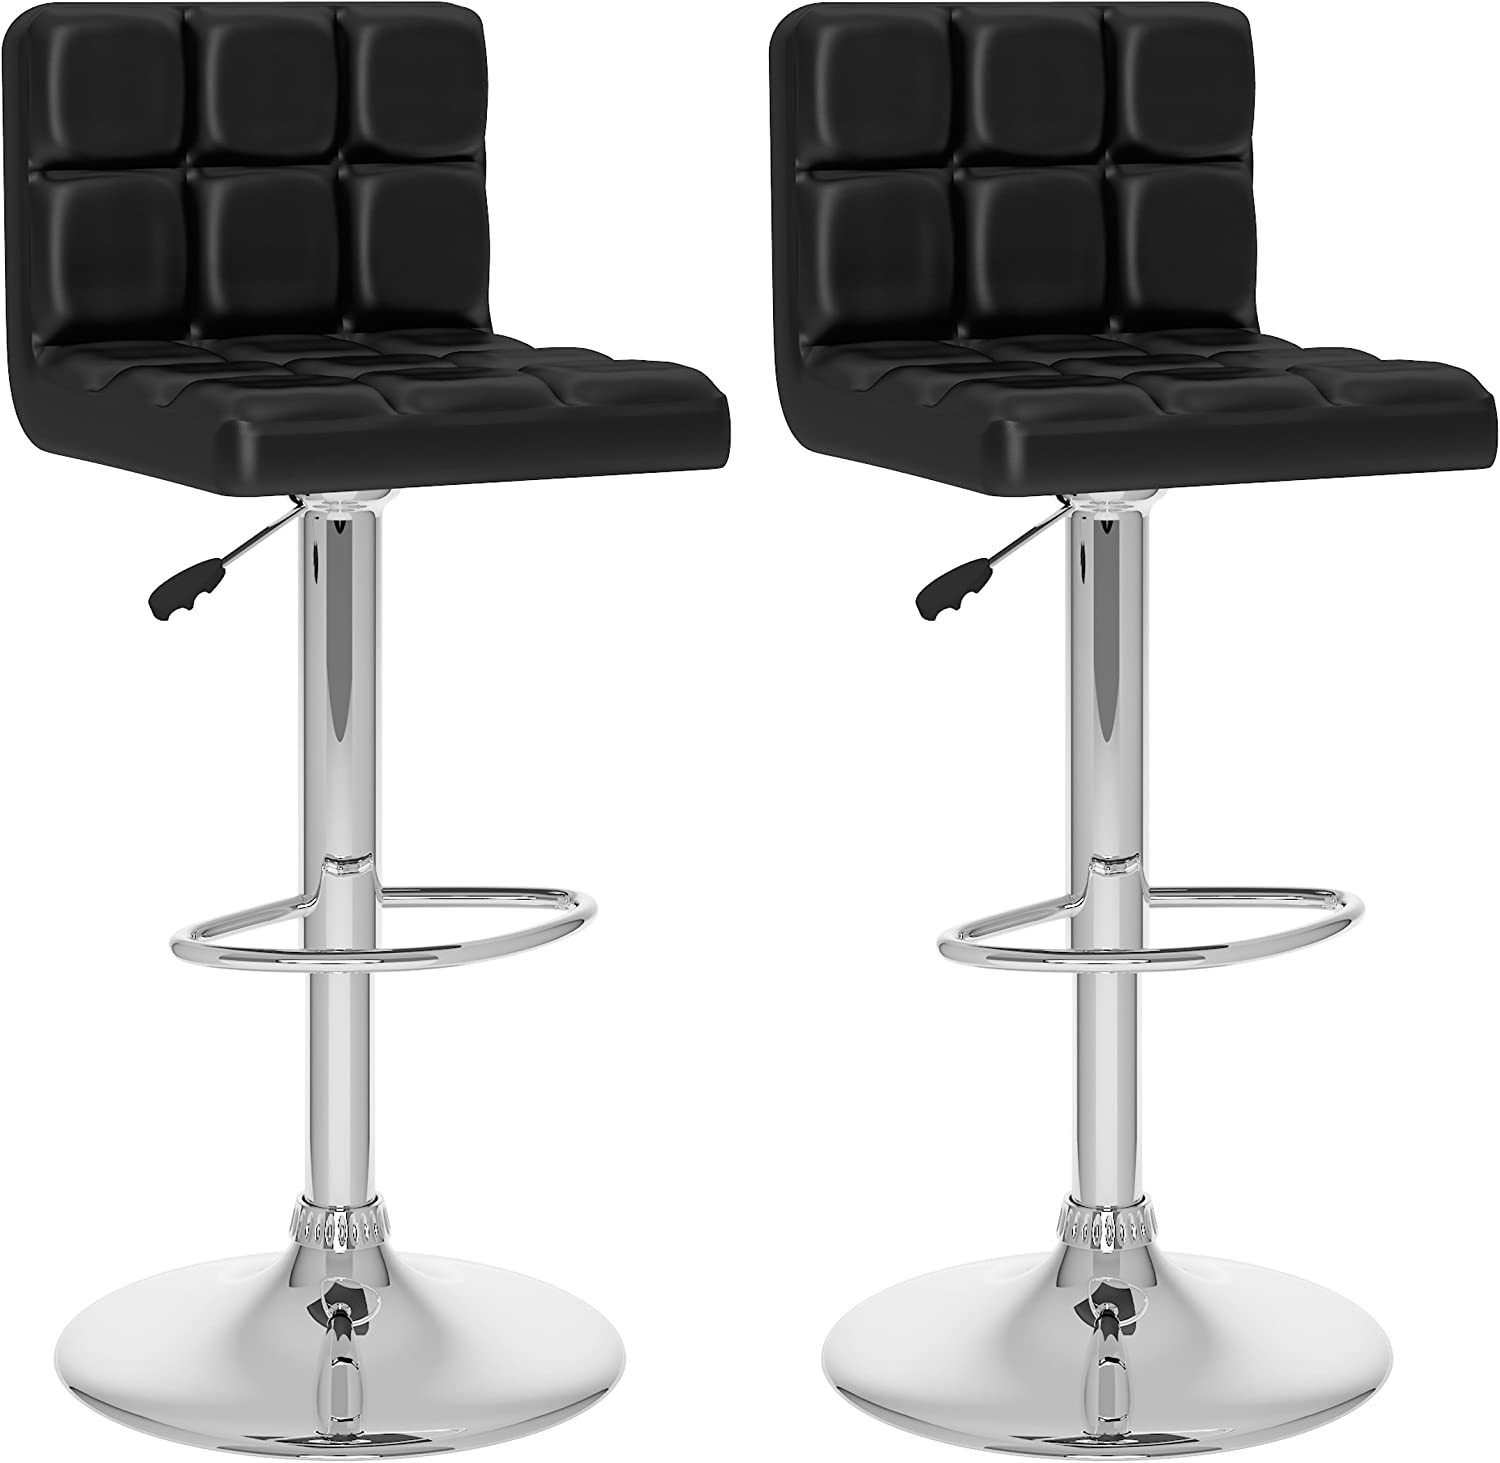 CorLiving High Back Adjustable Bar Stool, Black Leatherette, Set of 2